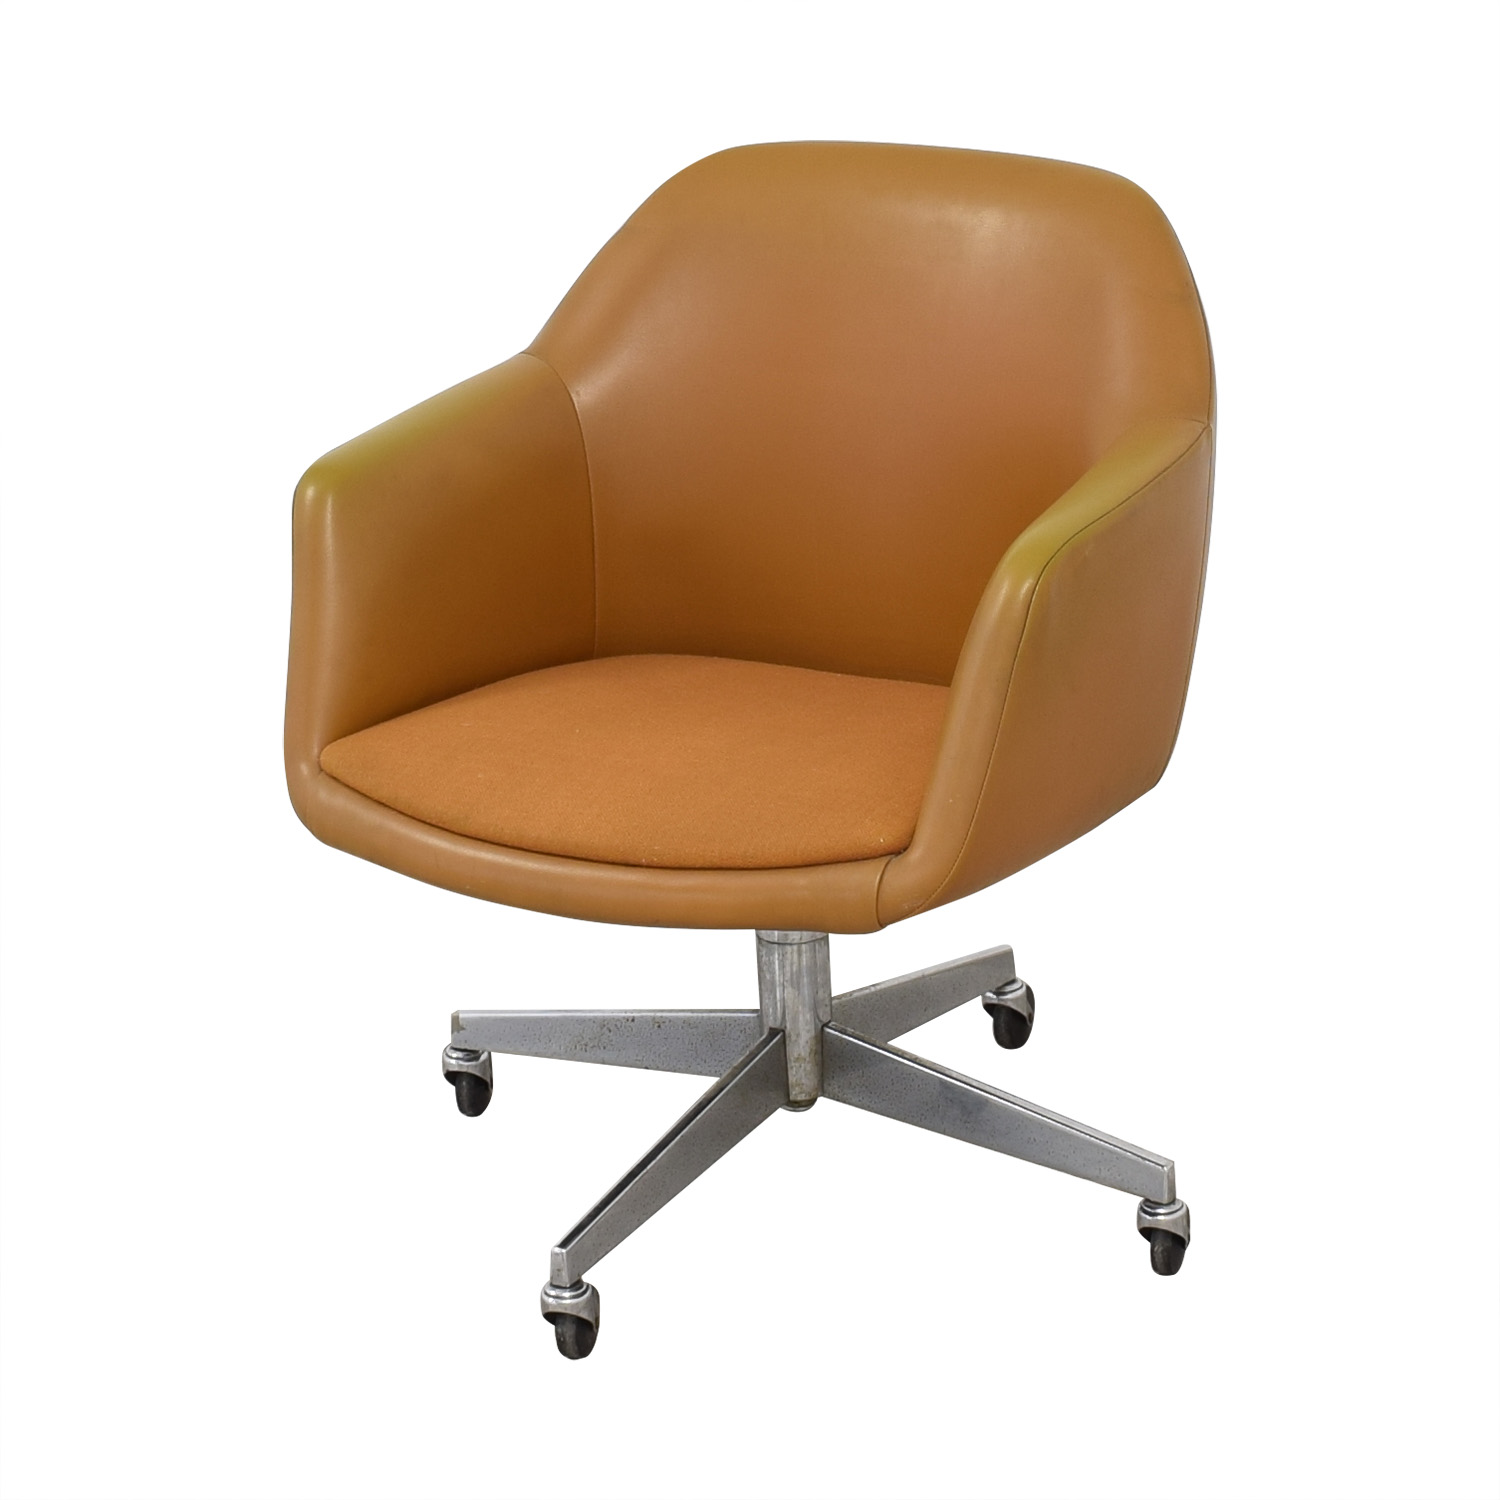 Steelcase Steelcase Mid Century Office Chair discount